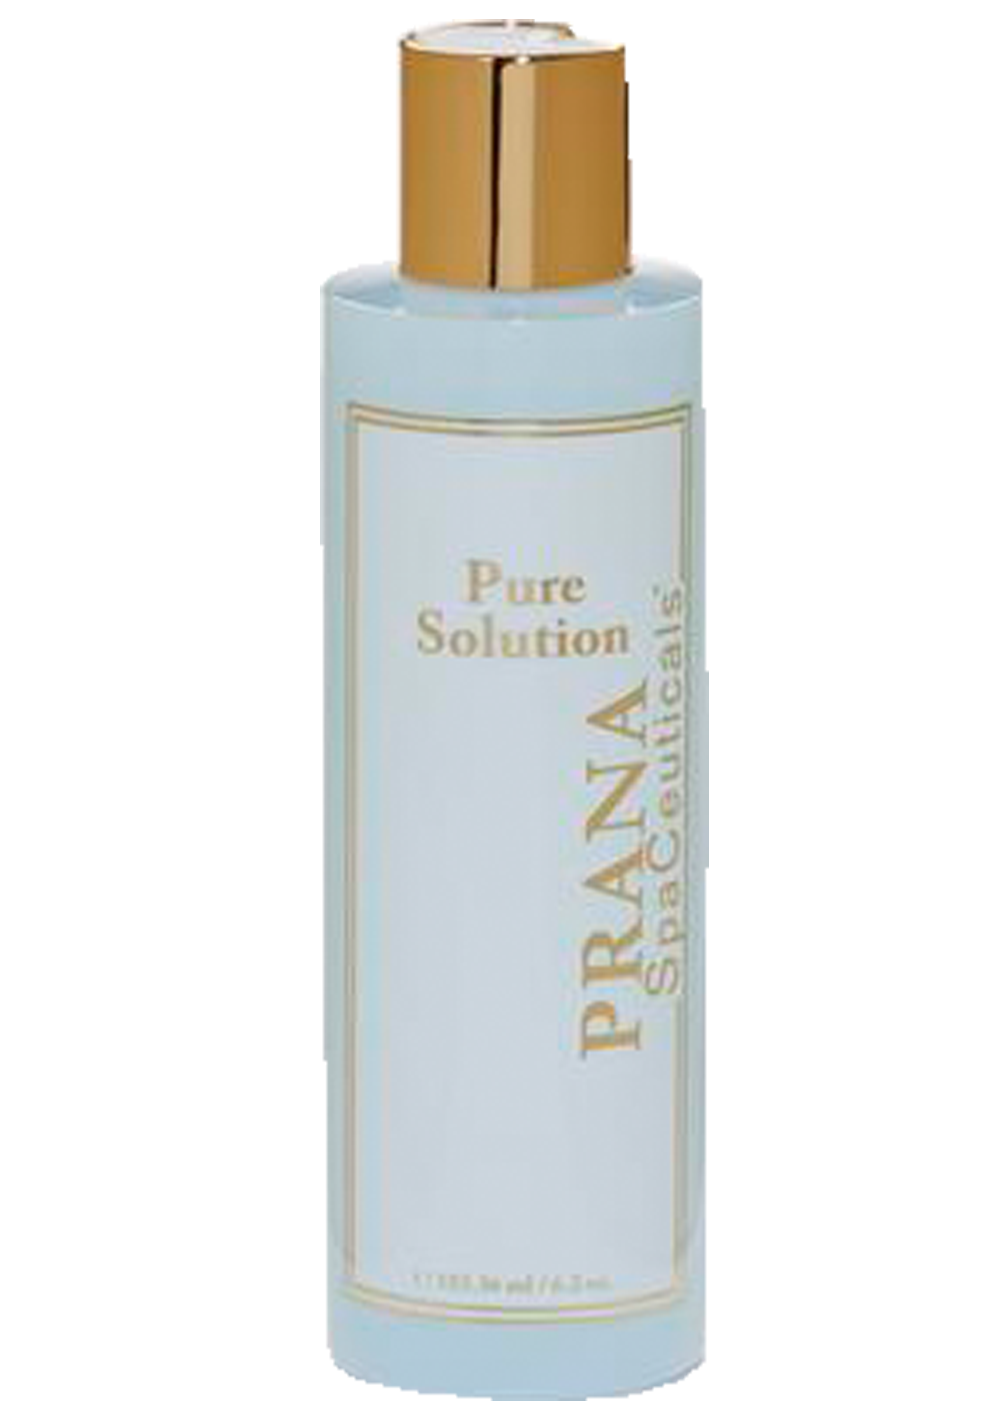 Prana SpaCeuticals Pure Solution 6.2oz European Beauty by B